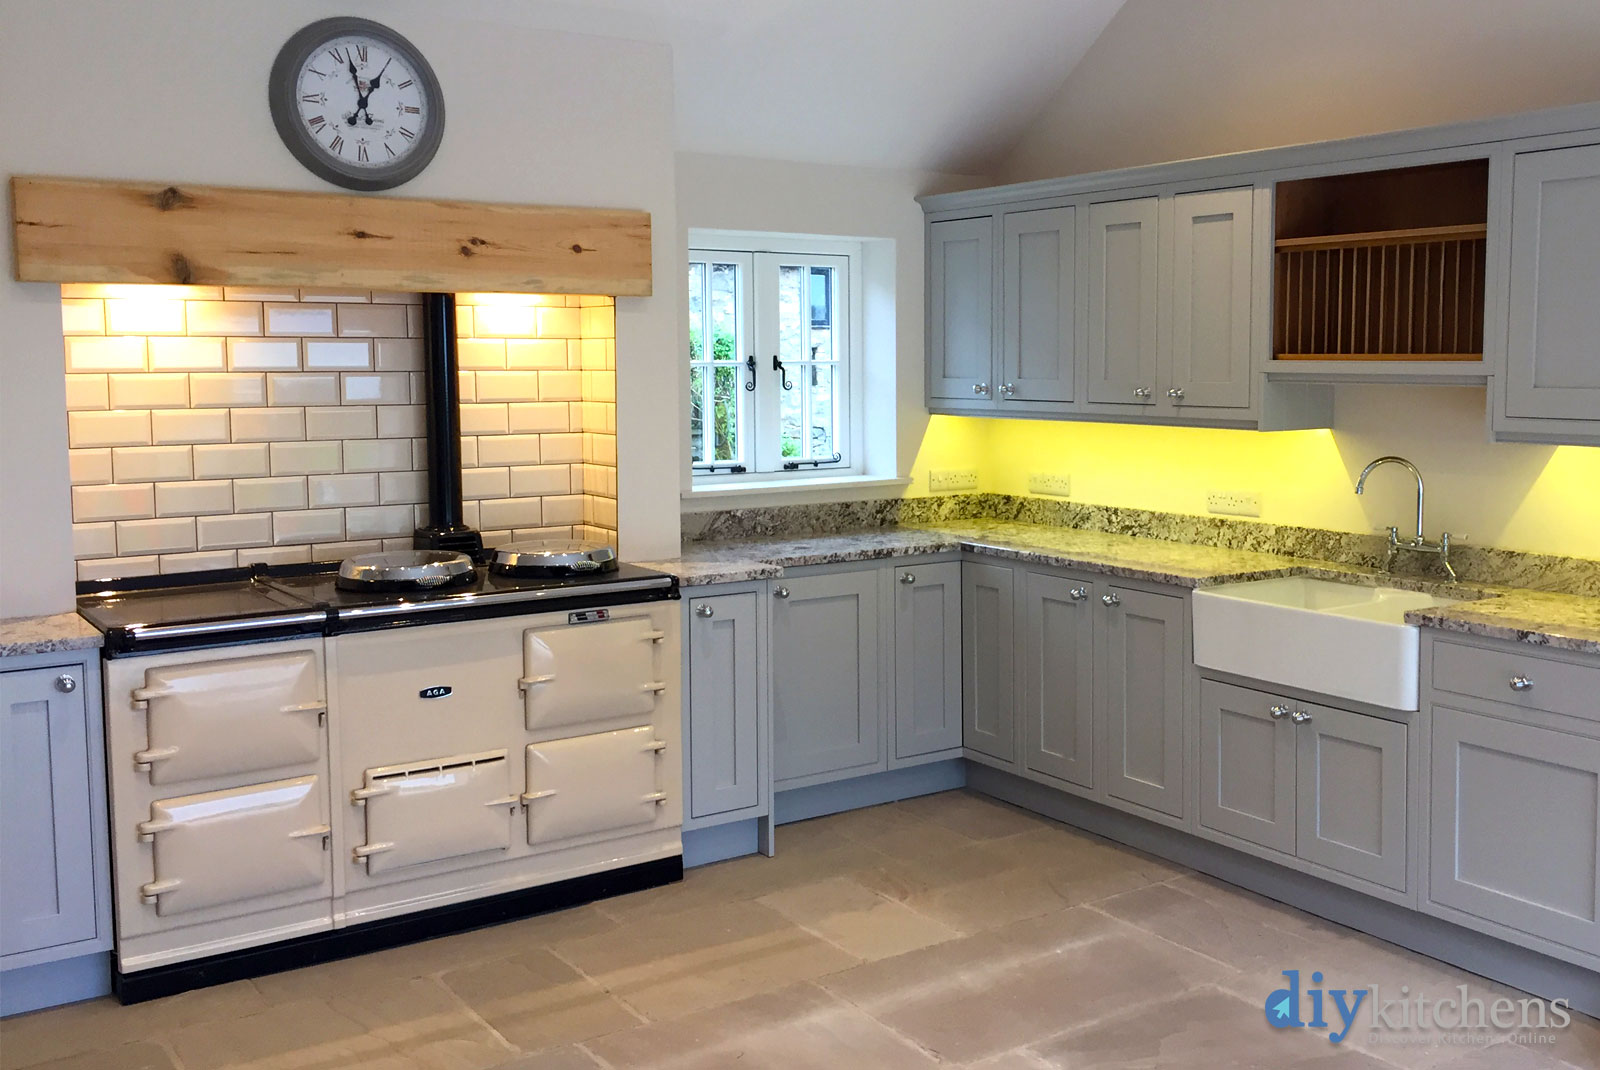 Zoe from oswestry i have attached photos of my newly for Diy kitchens com reviews